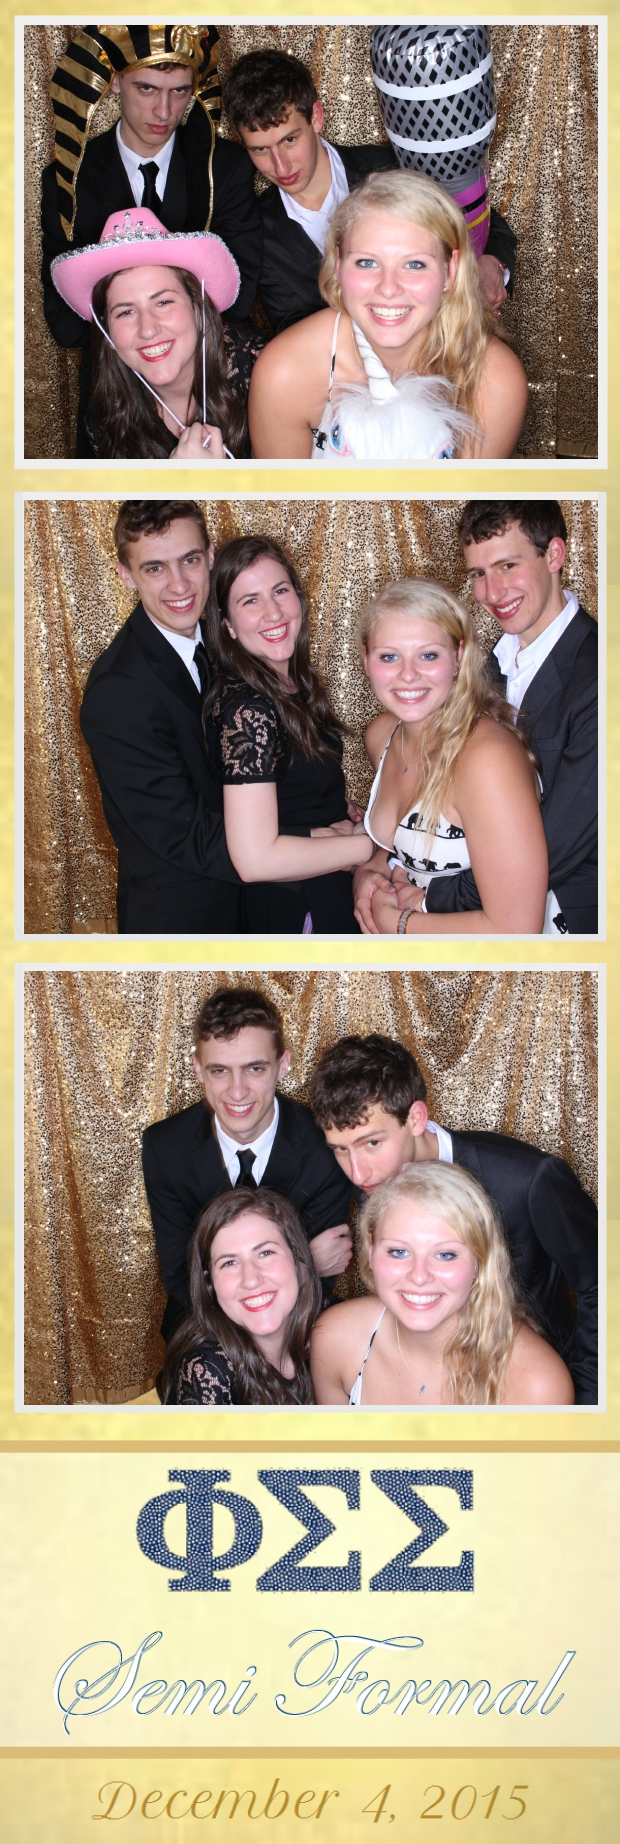 Guest House Events Photo Booth Phi Sigma Sigma Semi Formal (34).jpg